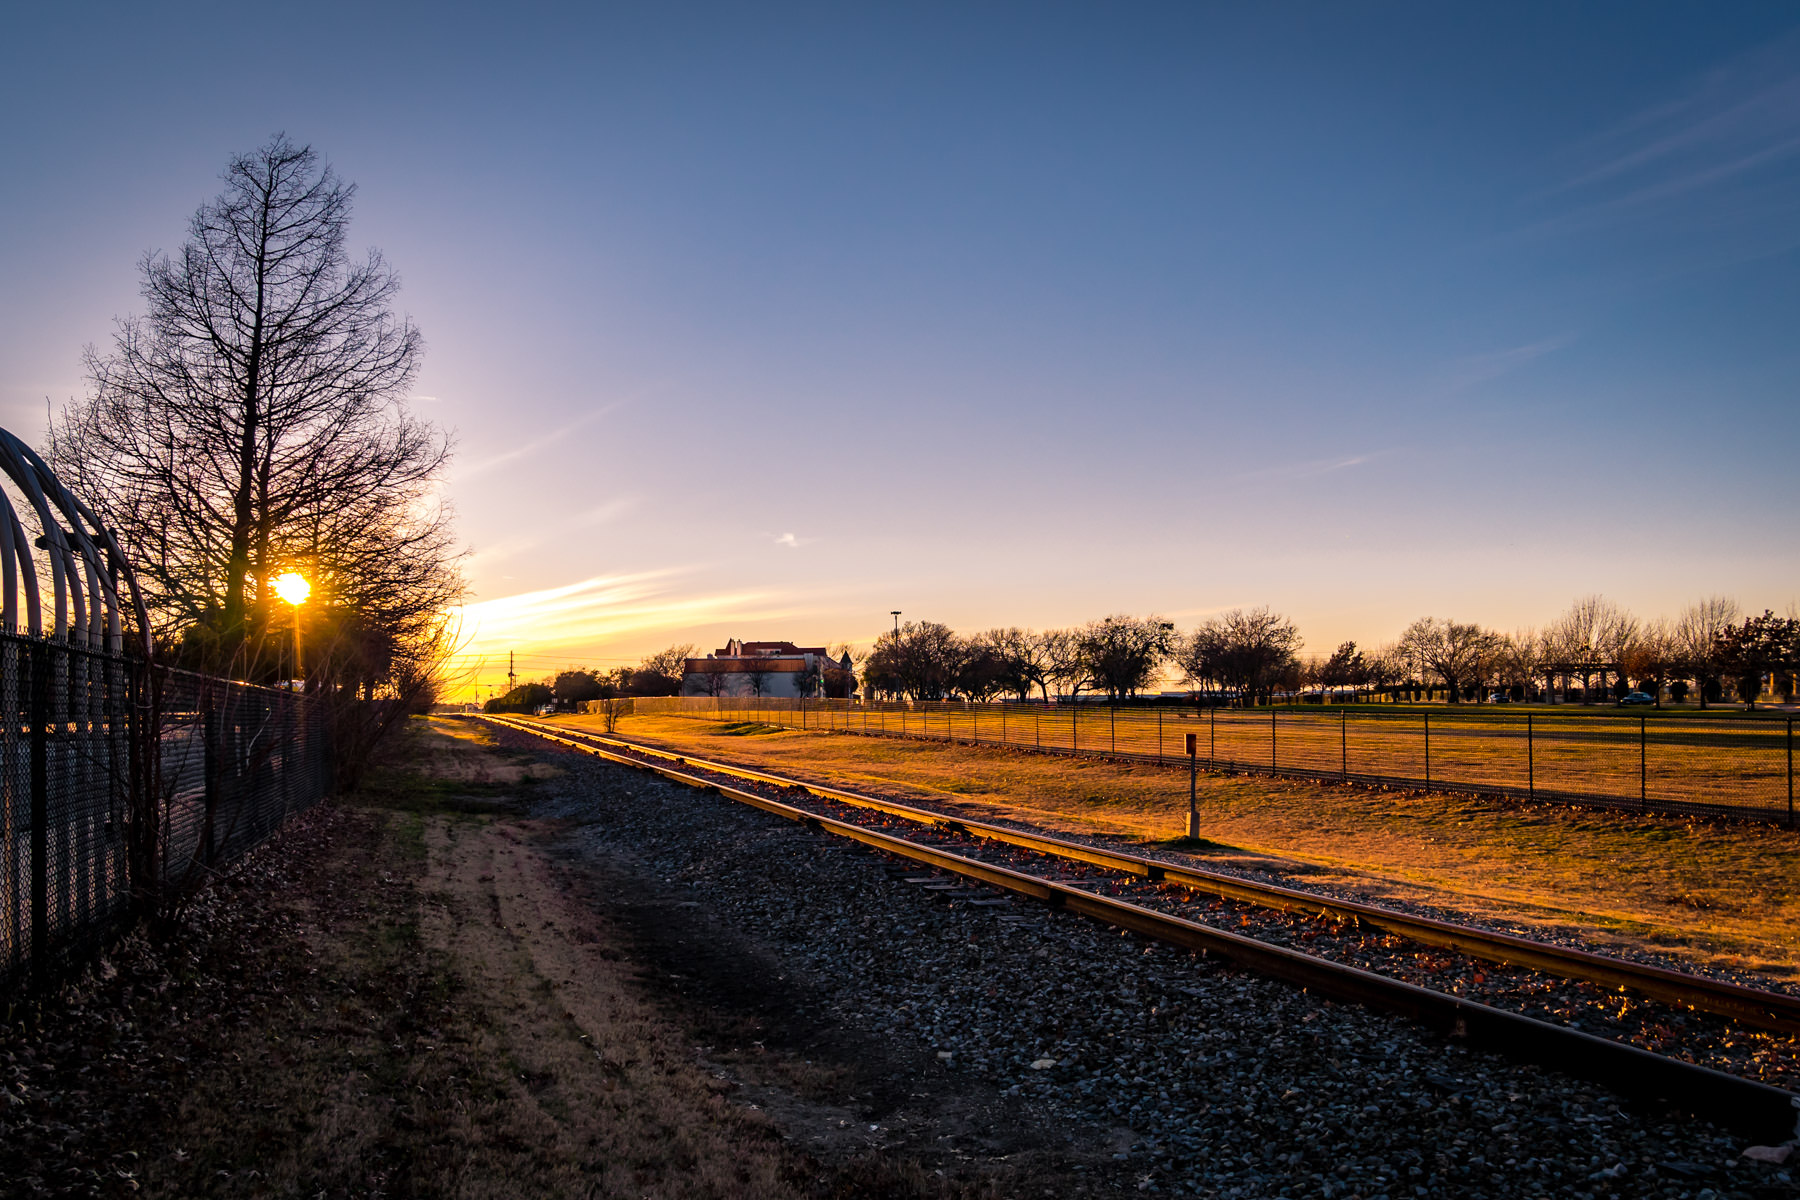 The evening sun illuminates train tracks running through Addison, Texas.